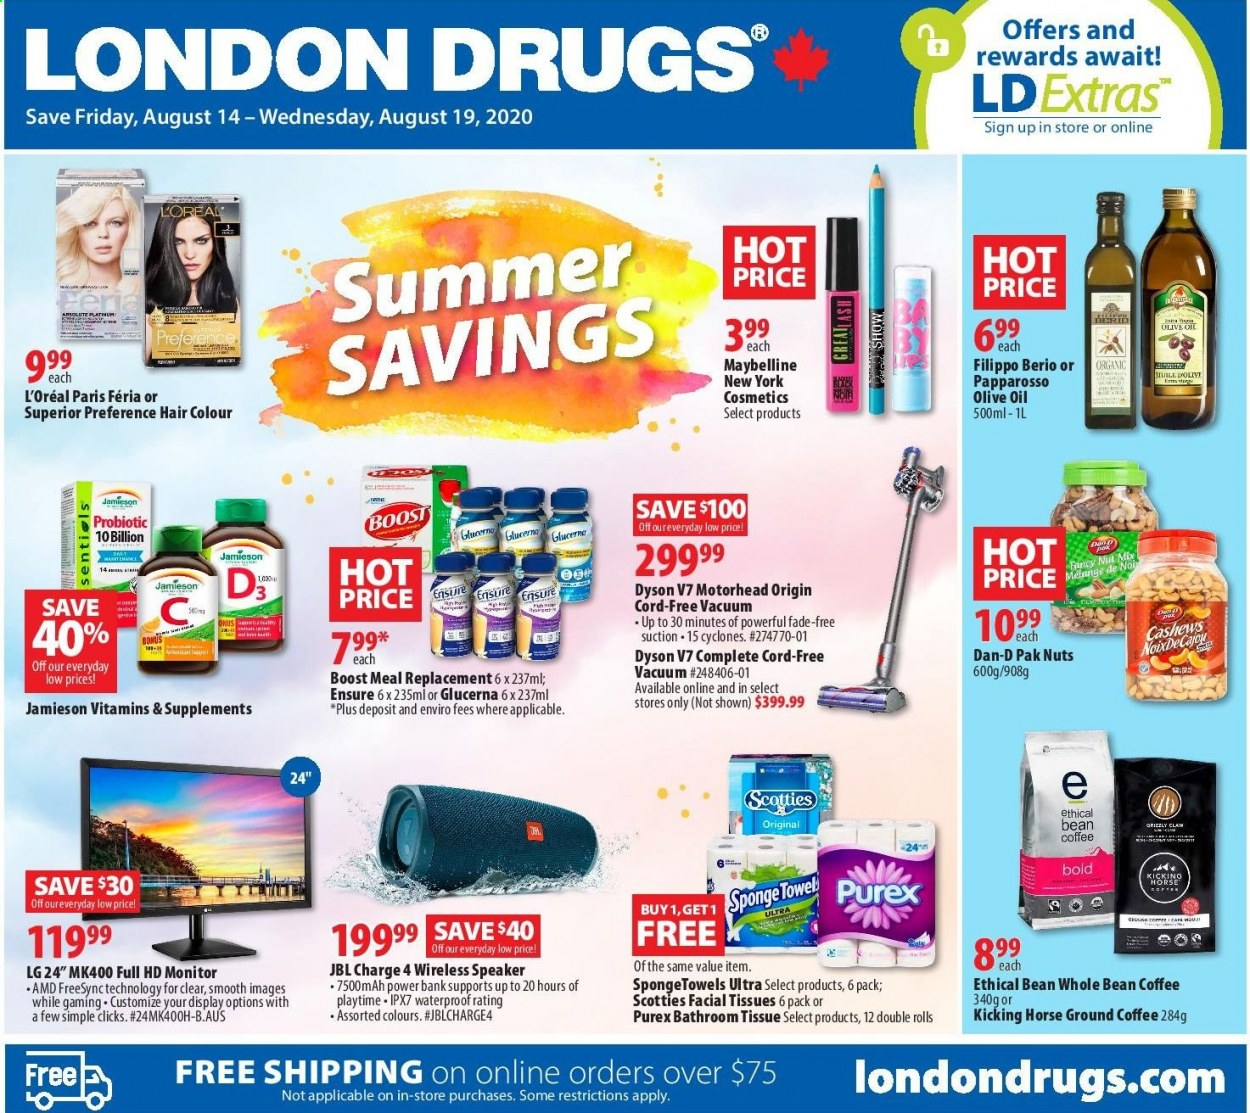 Circulaire London Drugs - 14 Août 2020 - 19 Août 2020 - Produits soldés - absolute, amd, cashews, coffee, facial tissues, full hd, l'oréal, lg, mah, maybelline, monitor, speaker, towel, vacuum, jbl, olive oil, organic, sponge, smooth, cosmetics, wireless, glucerna, dyson, nuts, jamieson. Page 1.